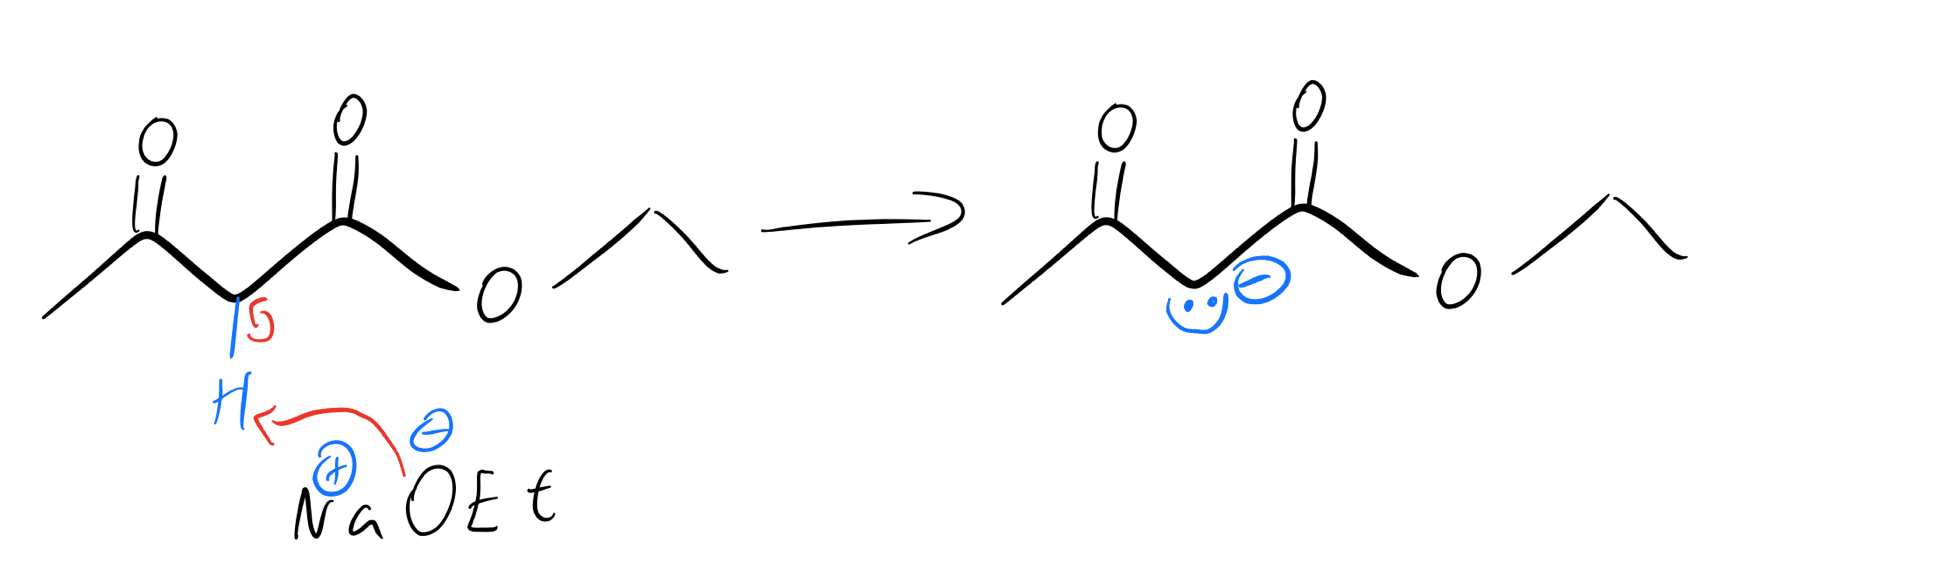 Methylene-enolate-formation